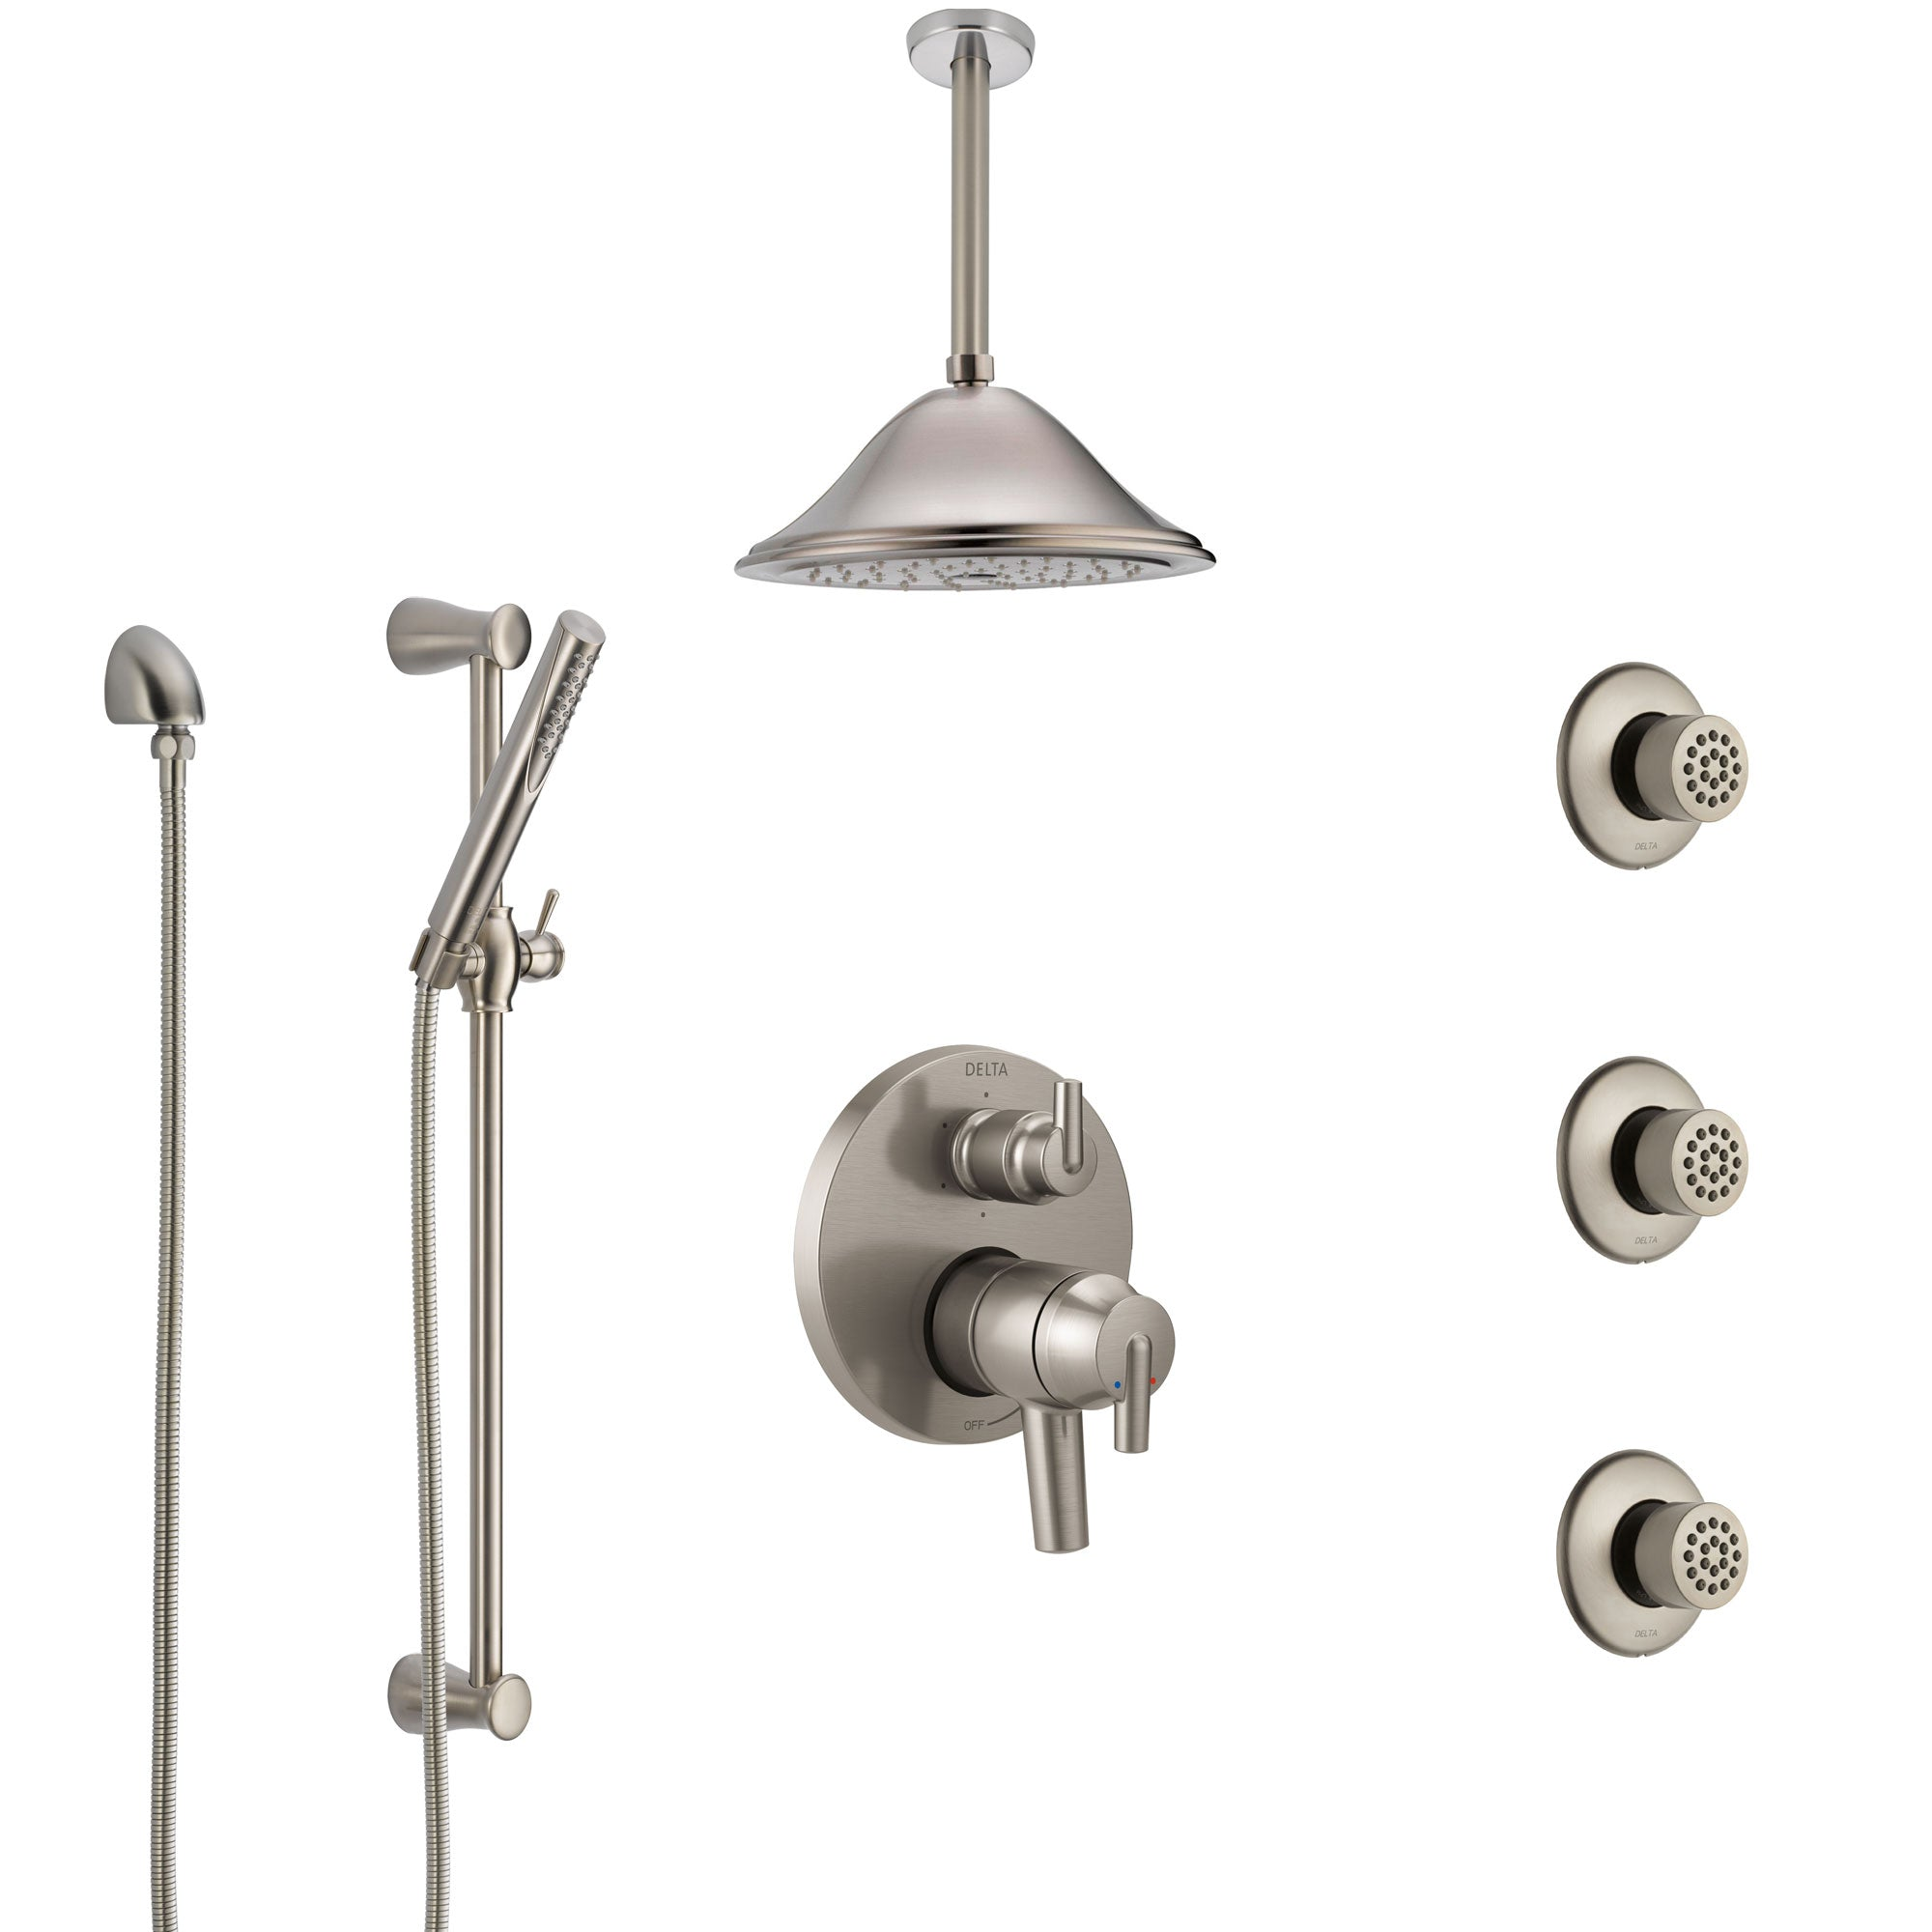 Delta Trinsic Dual Control Handle Stainless Steel Finish Integrated Diverter Shower System, Ceiling Showerhead, 3 Body Sprays, Hand Spray SS27959SS7